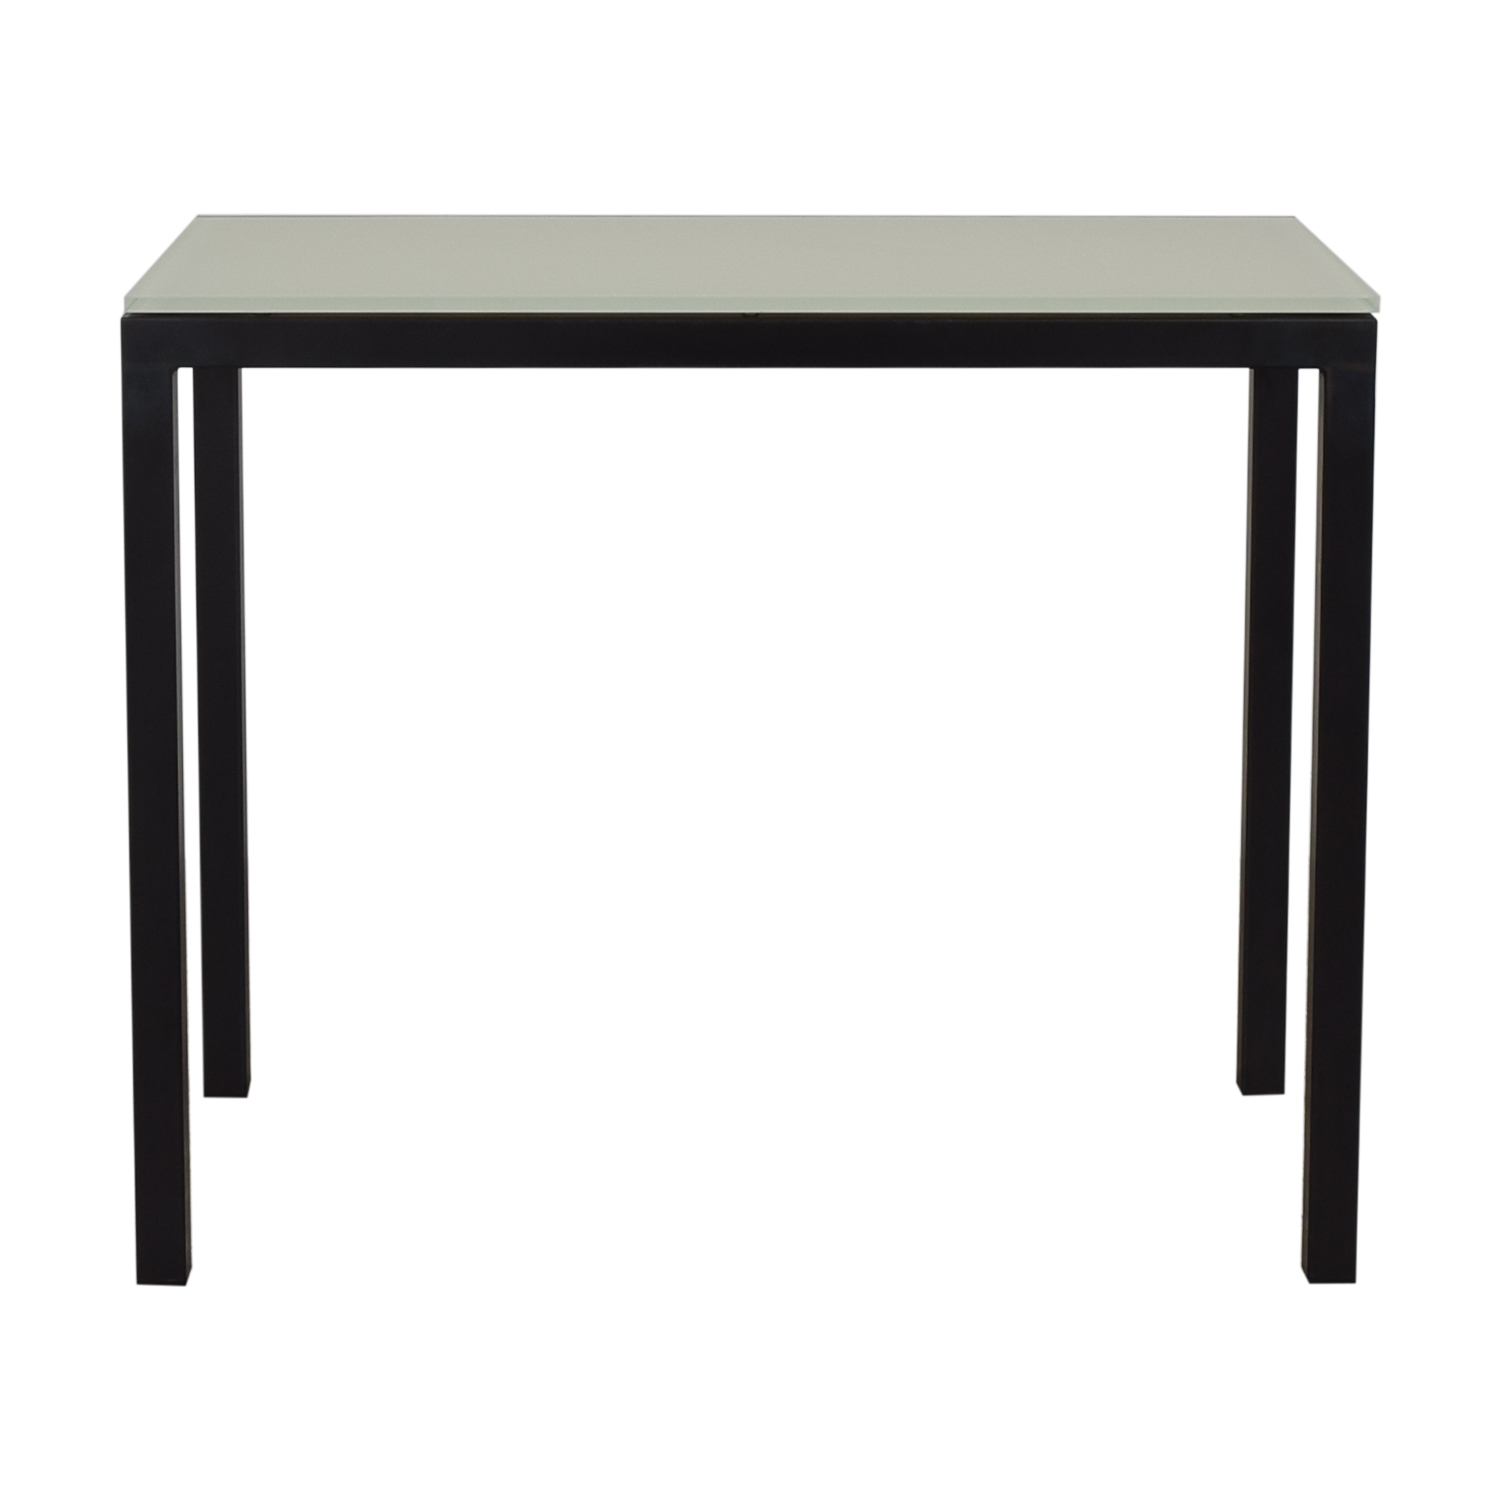 Room & Board Room & Board Parsons Console Table price